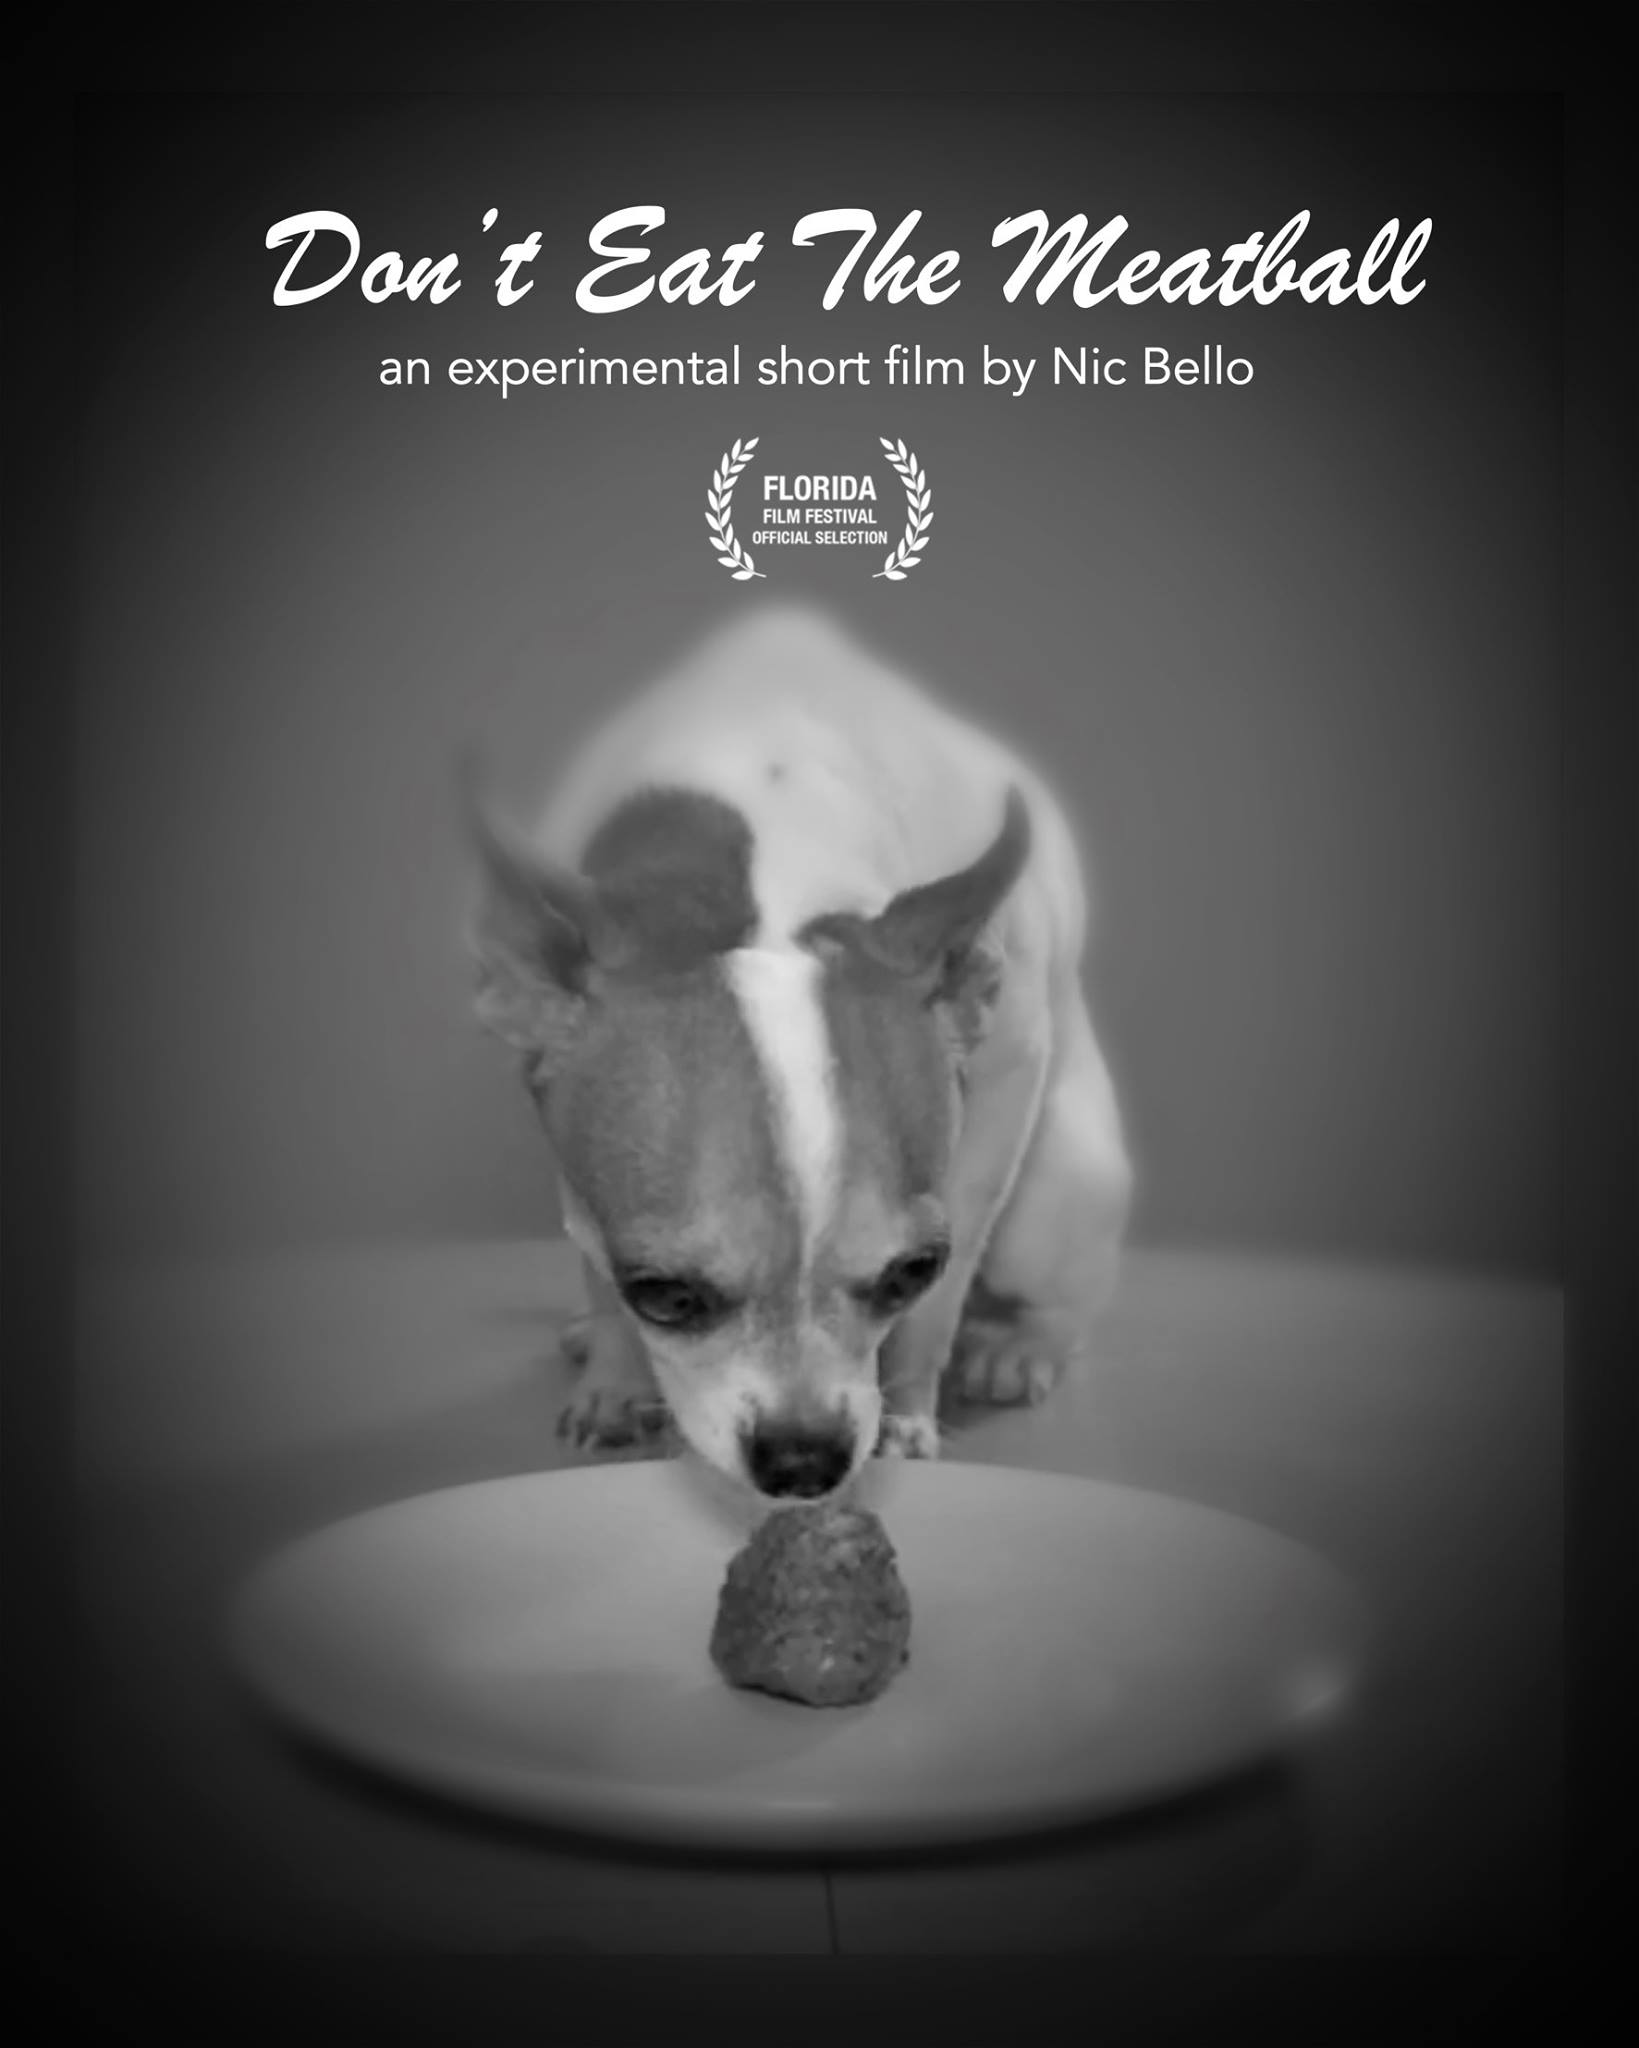 Don't Eat The Meatball